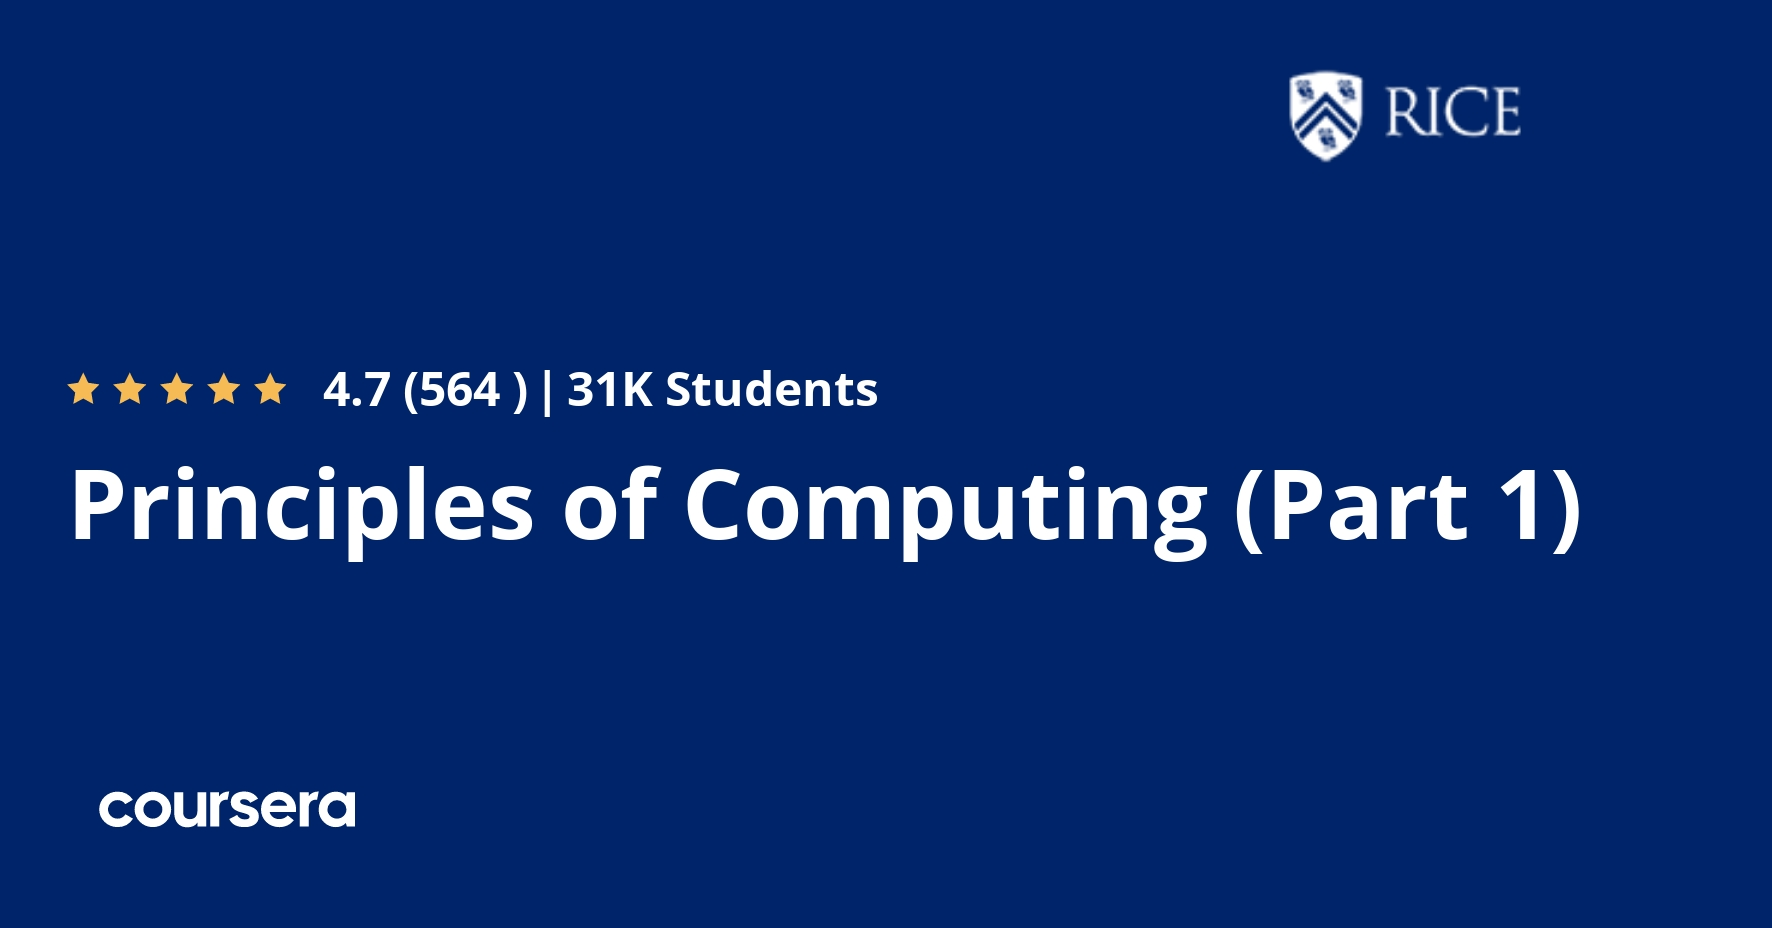 Principles of Computing (Part 1) (Coursera)